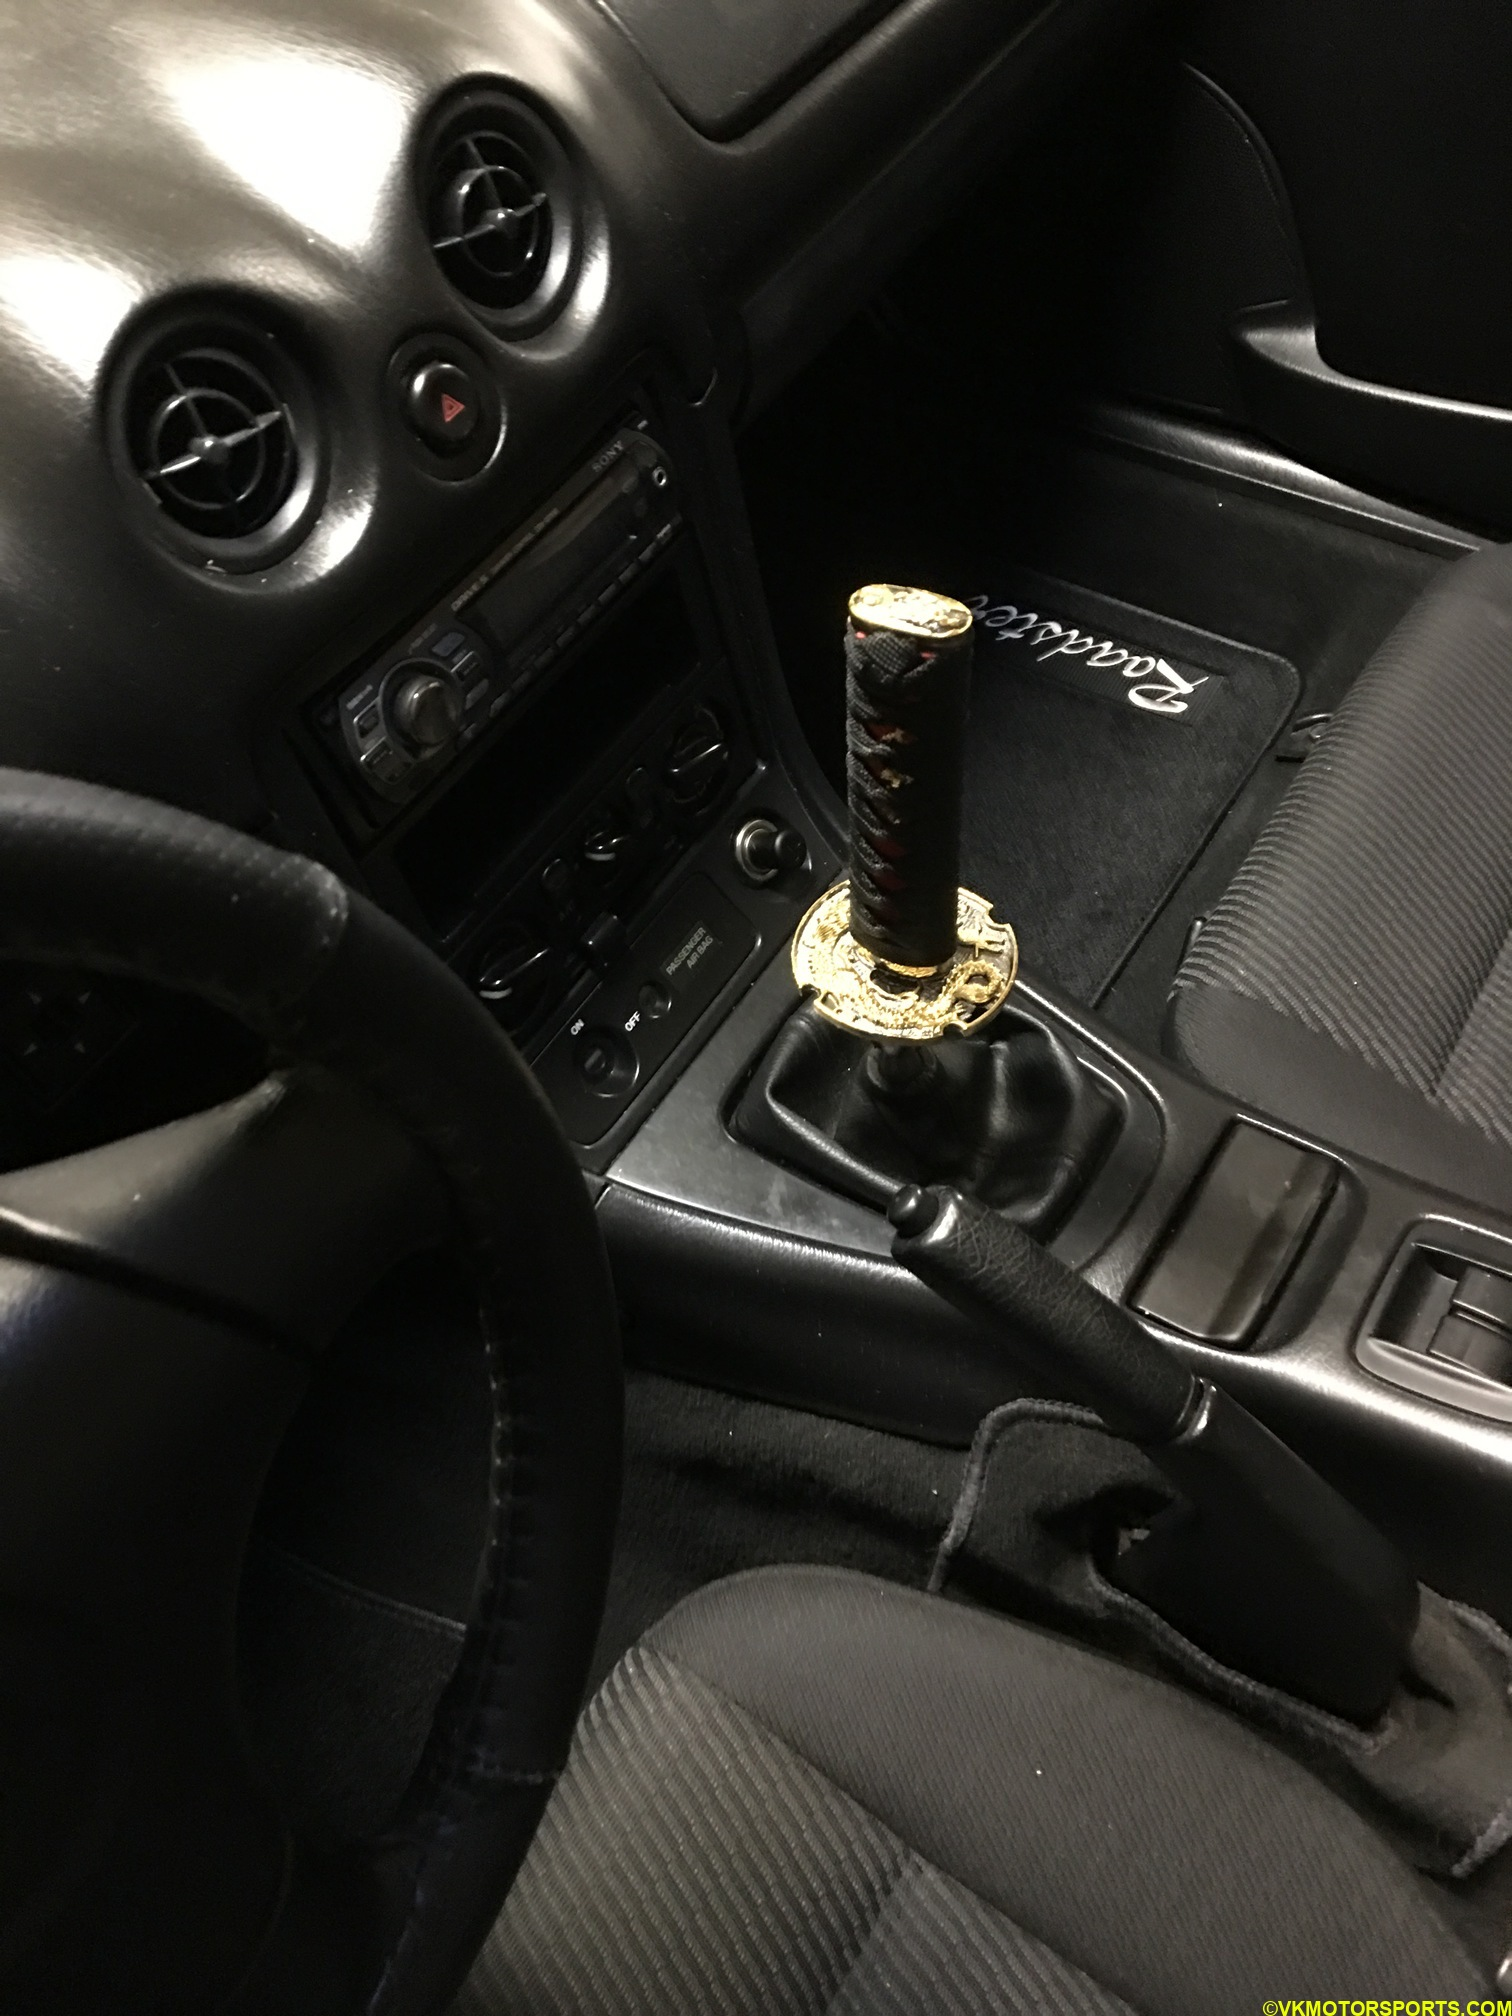 Figure 13. Far view of new shifter knob